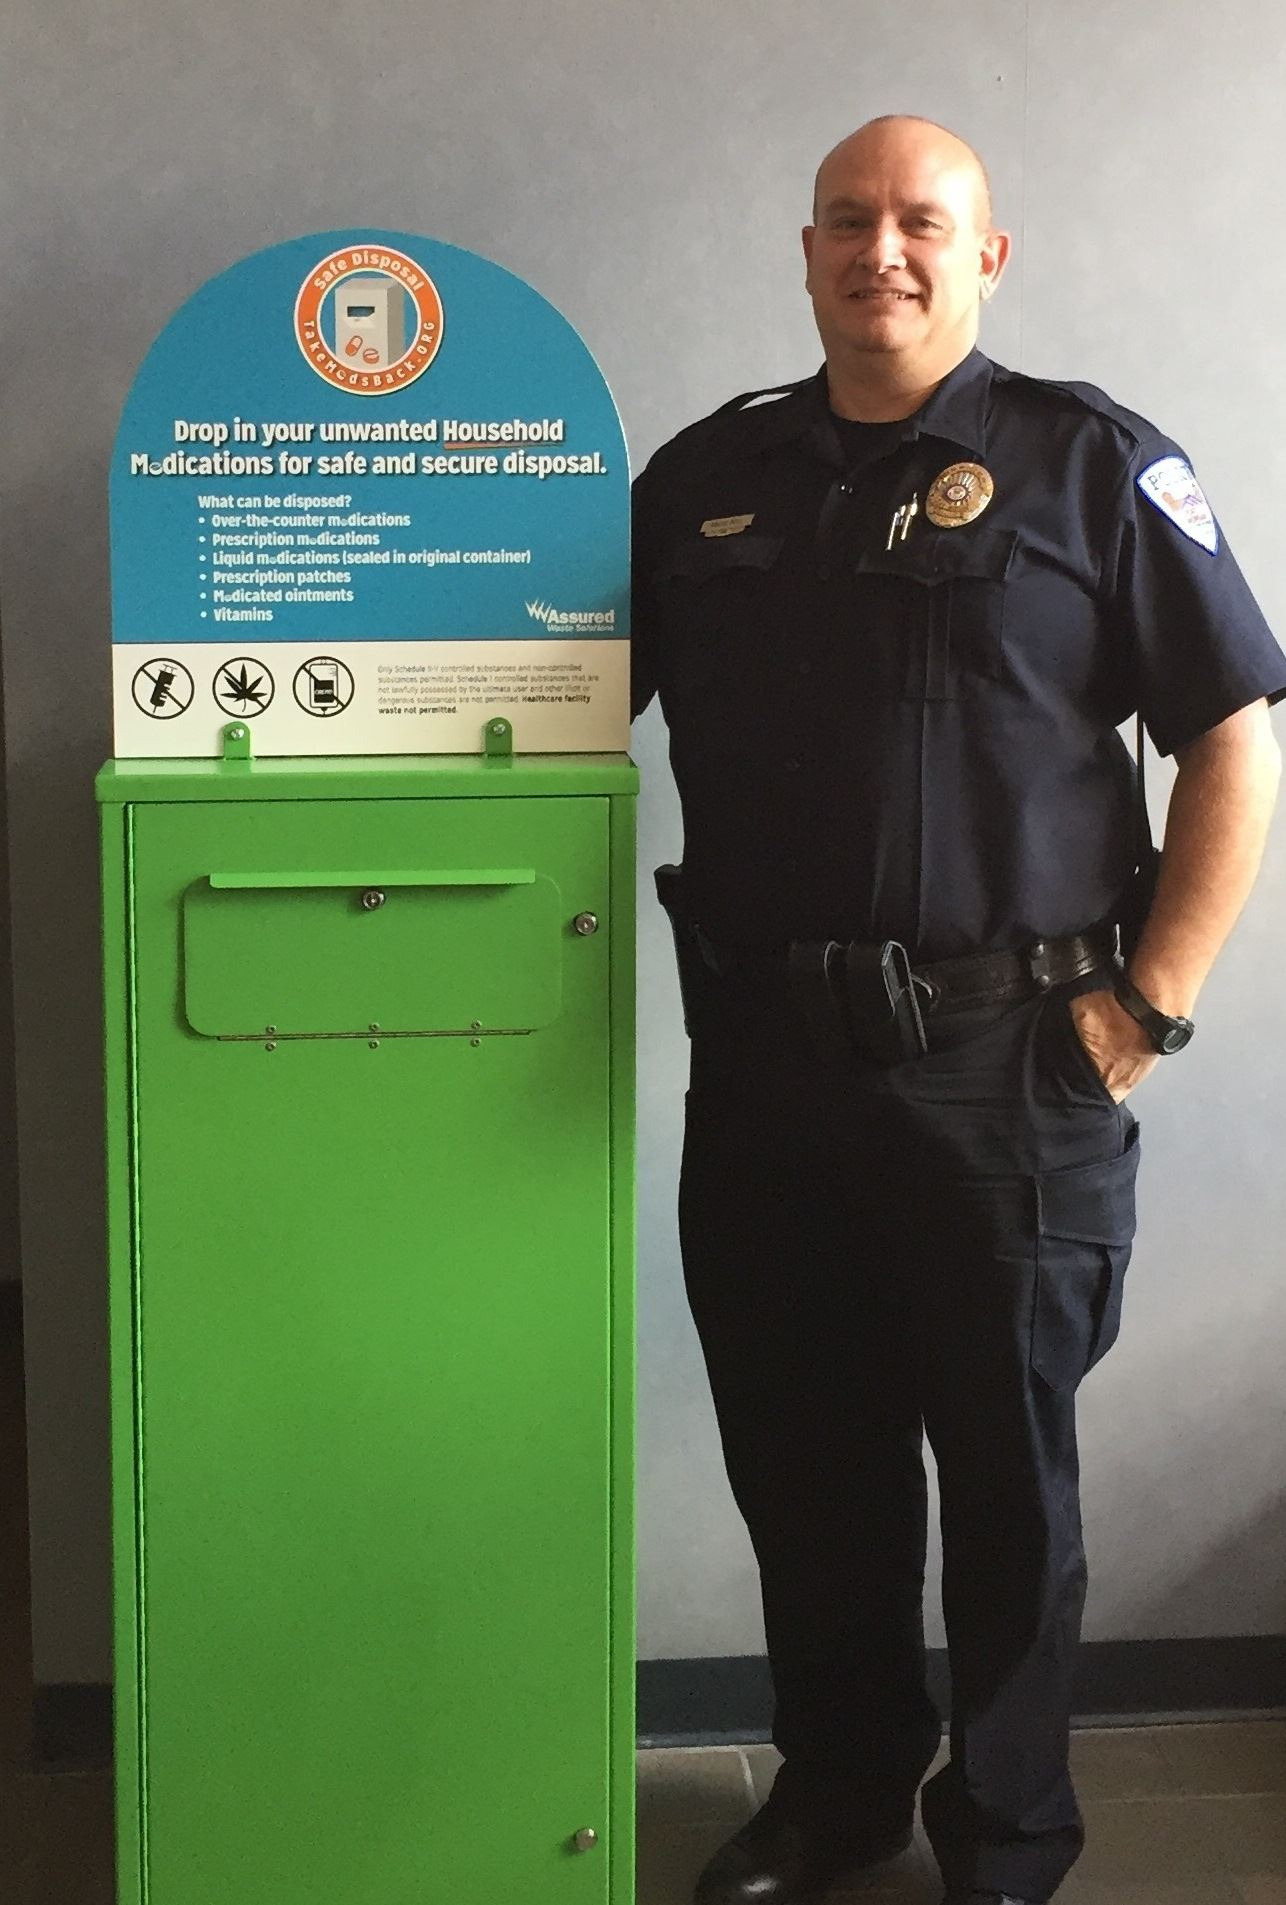 FMPD Officer Roger Doll with the police department's new medication drop box